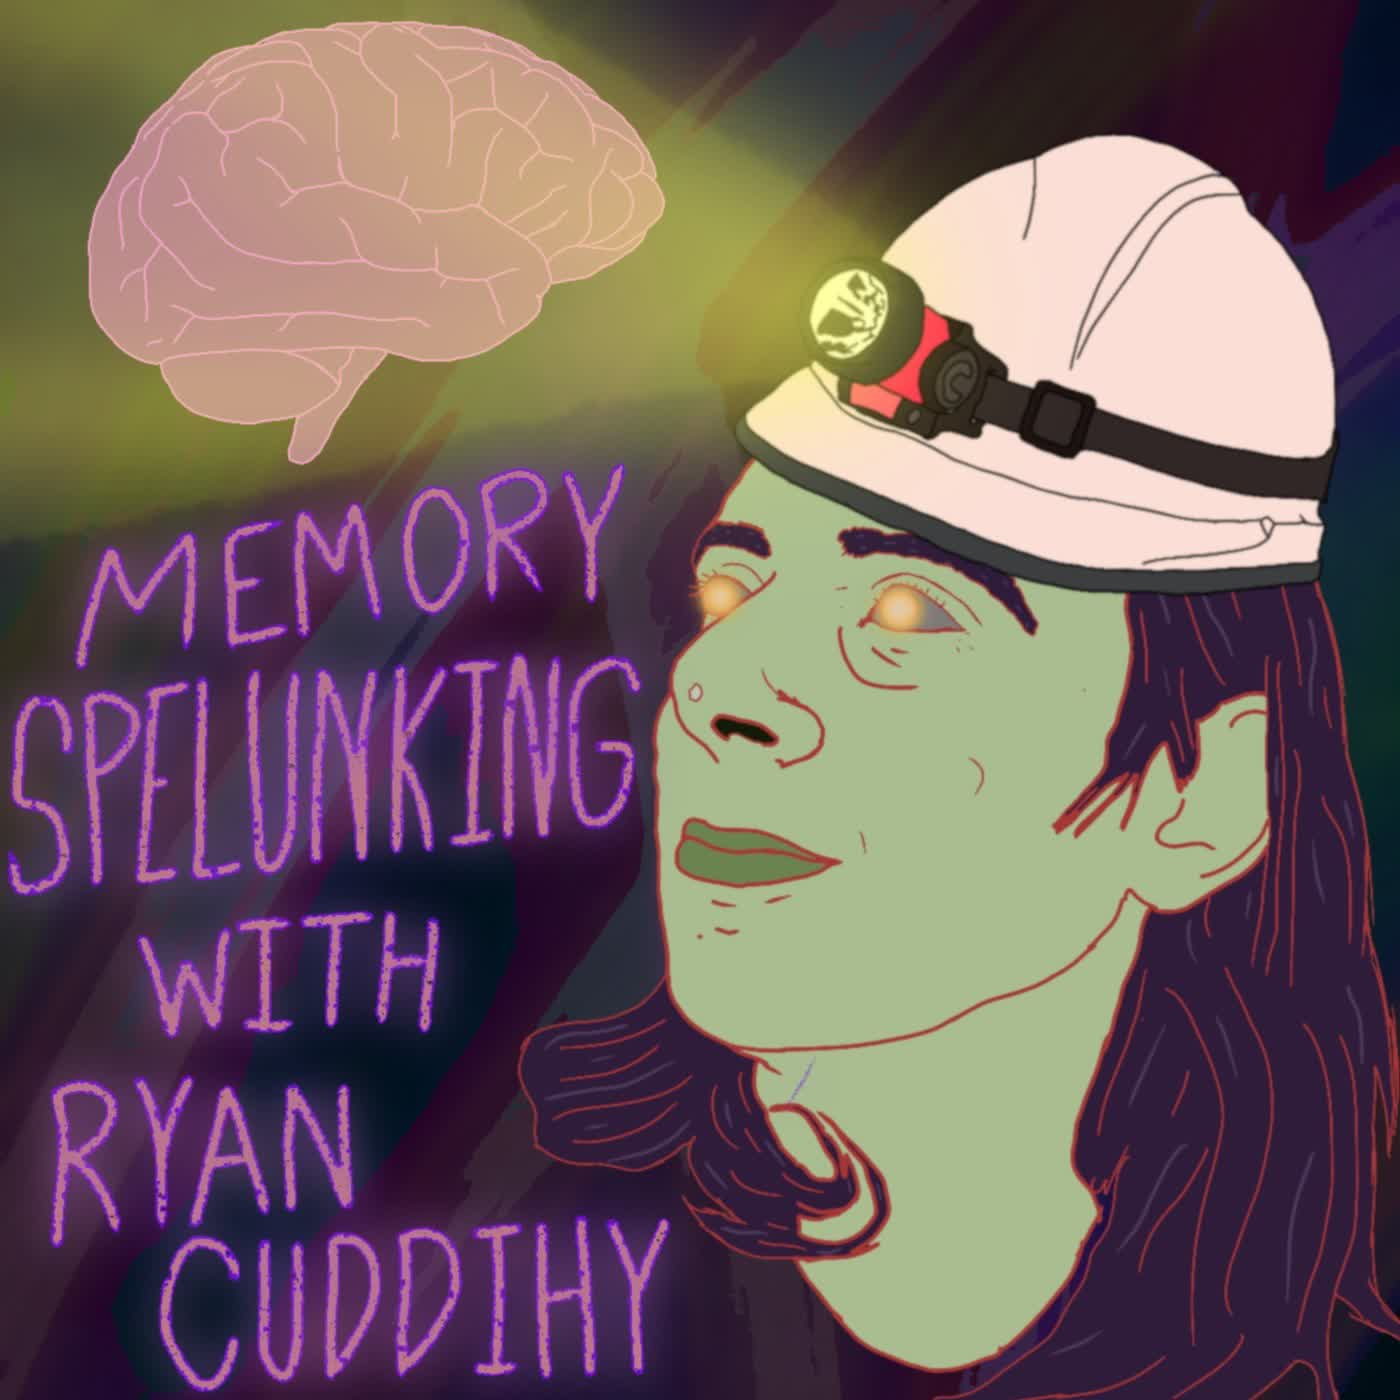 Memory Spelunking with Ryan Cuddihy:Ryan Cuddihy